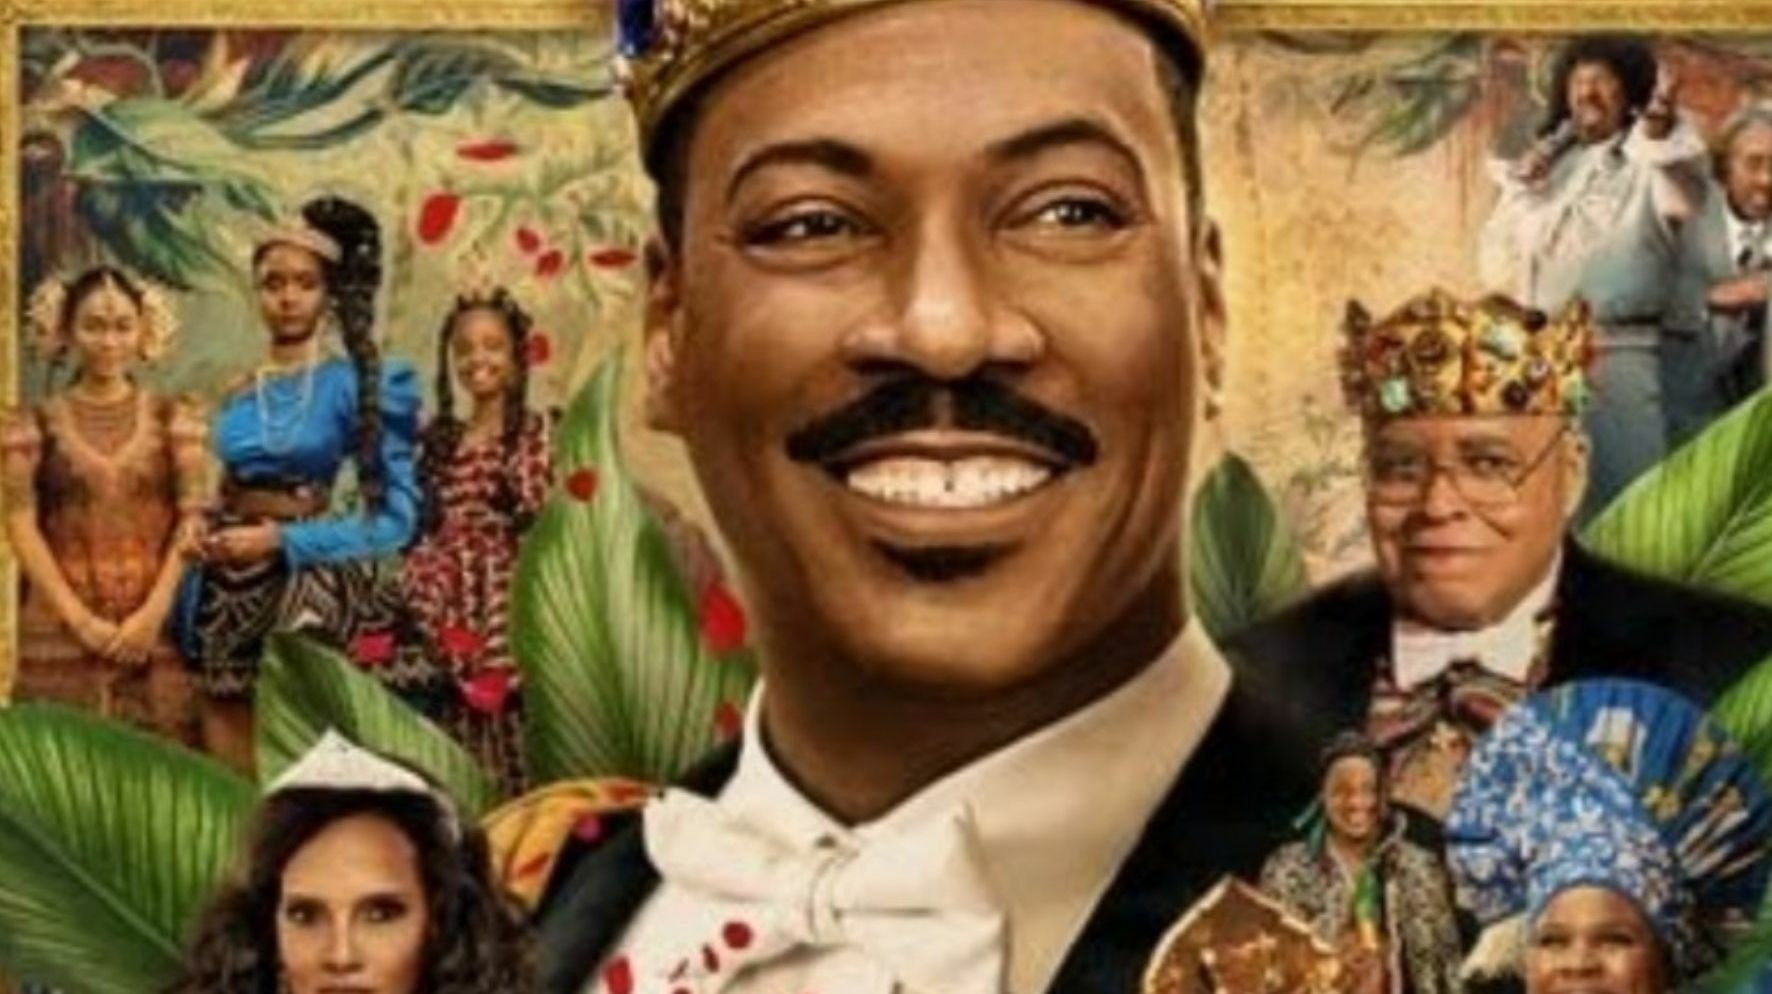 """""""Coming To America 2"""" - Analyzing Race Through Film 